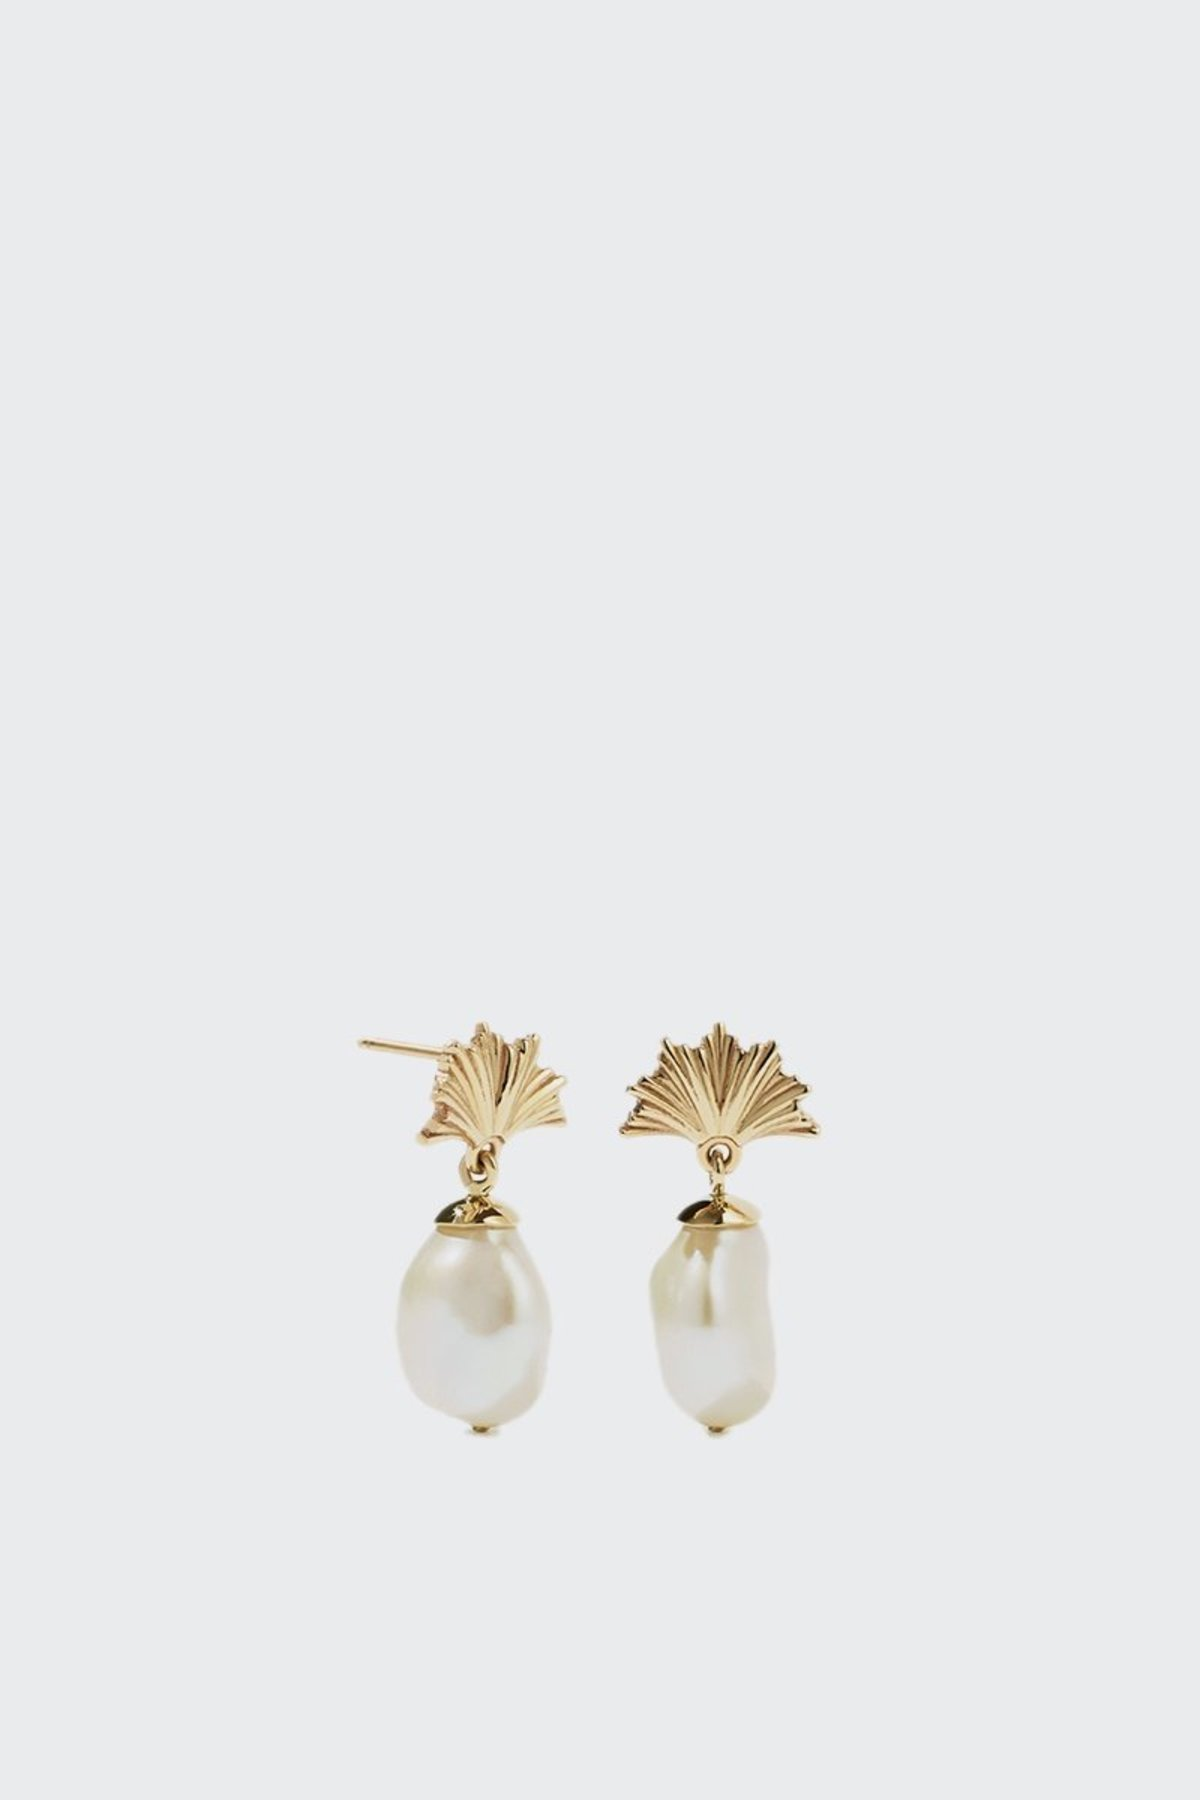 marchesa than metallic jewelry multi women in earrings lyst s small air drop lighter white